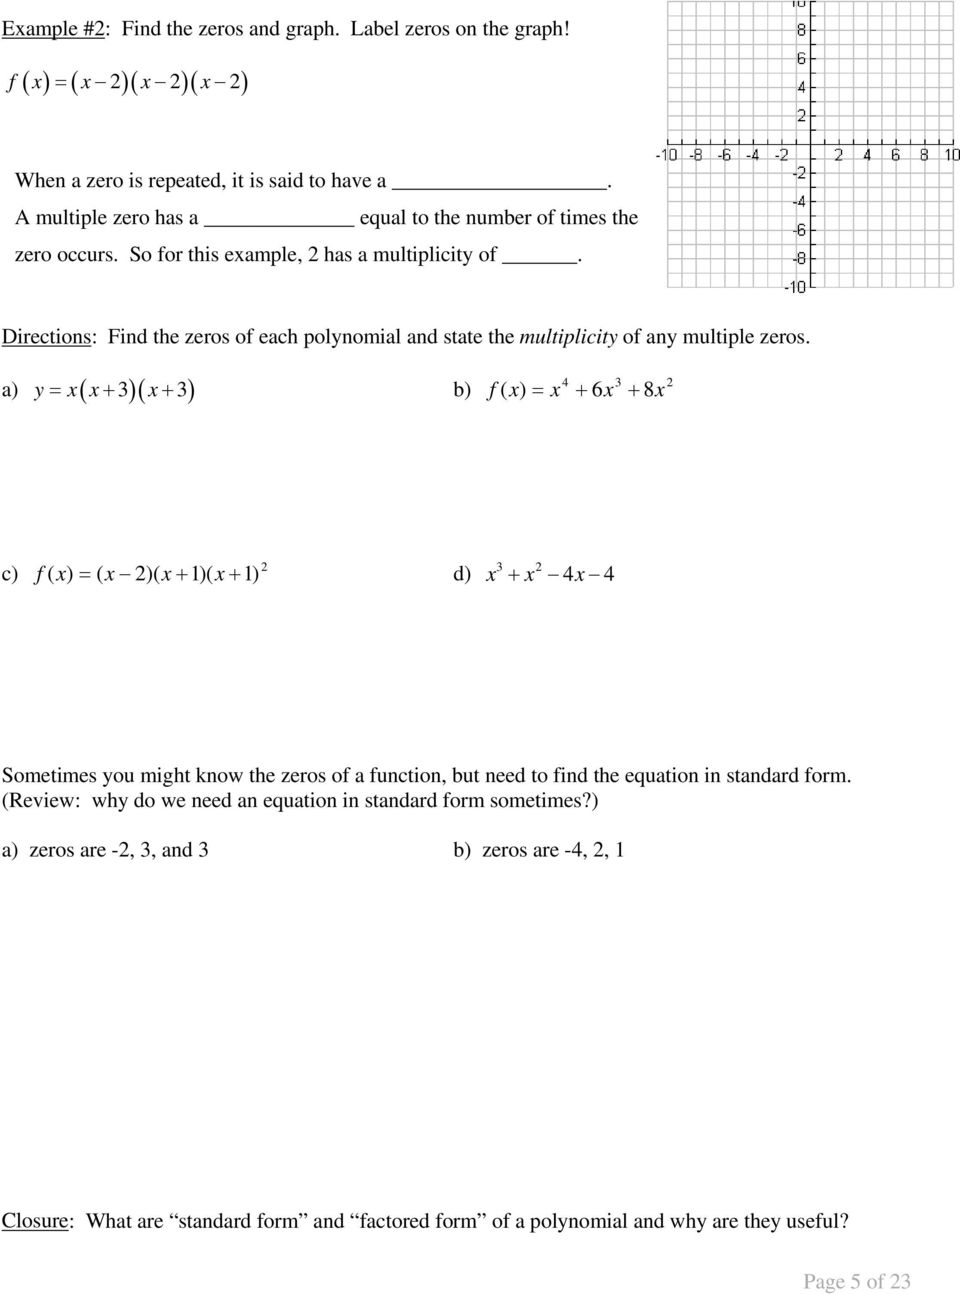 Unit 6 Polynomials 1 Polynomial Functions And End Behavior 2